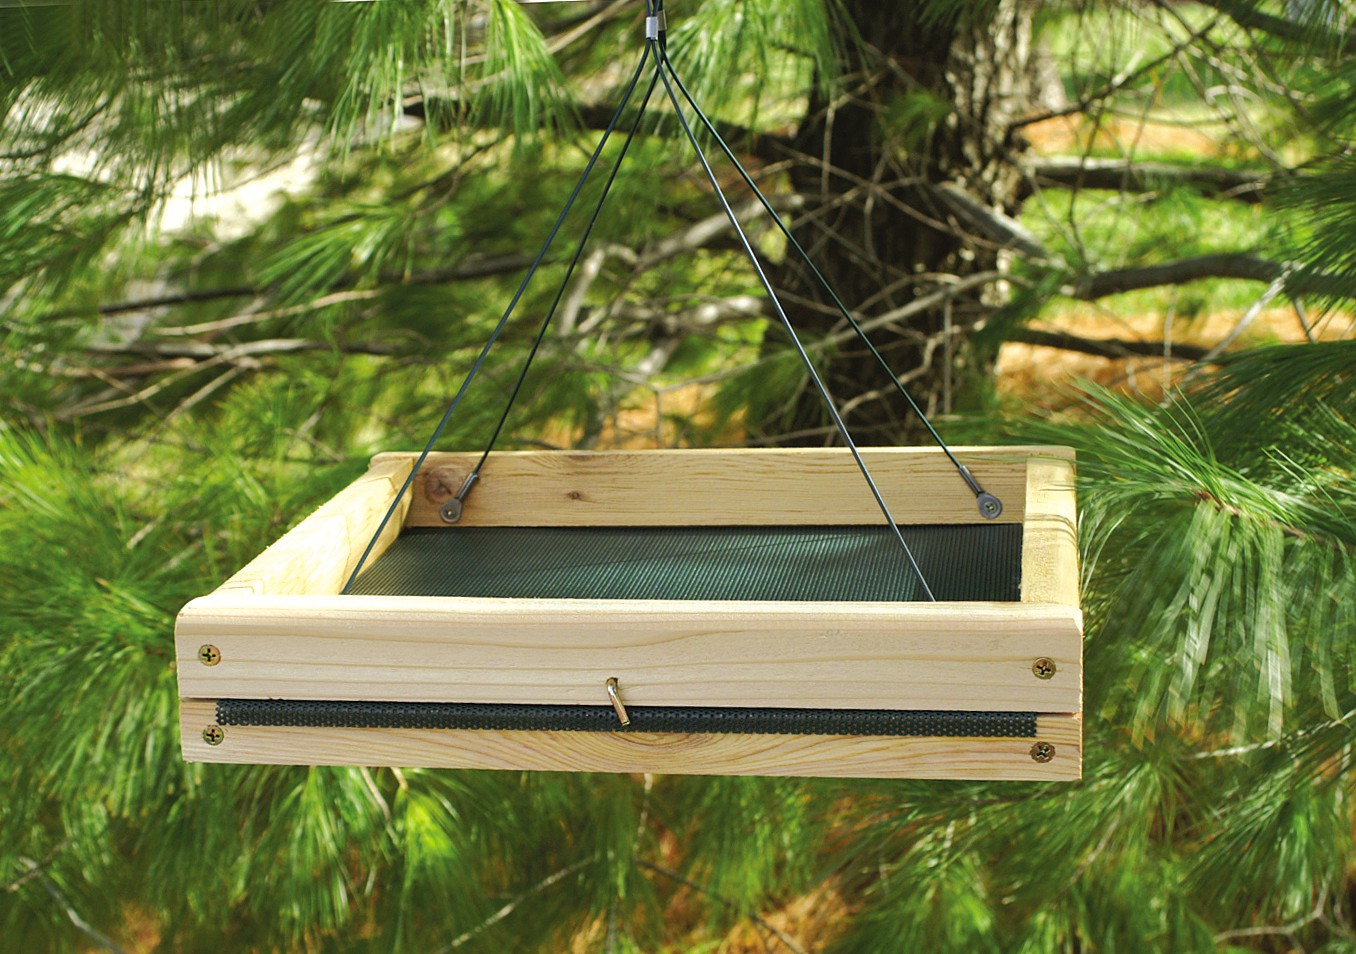 10.5 in. x 11.5 in. Hanging Feeder